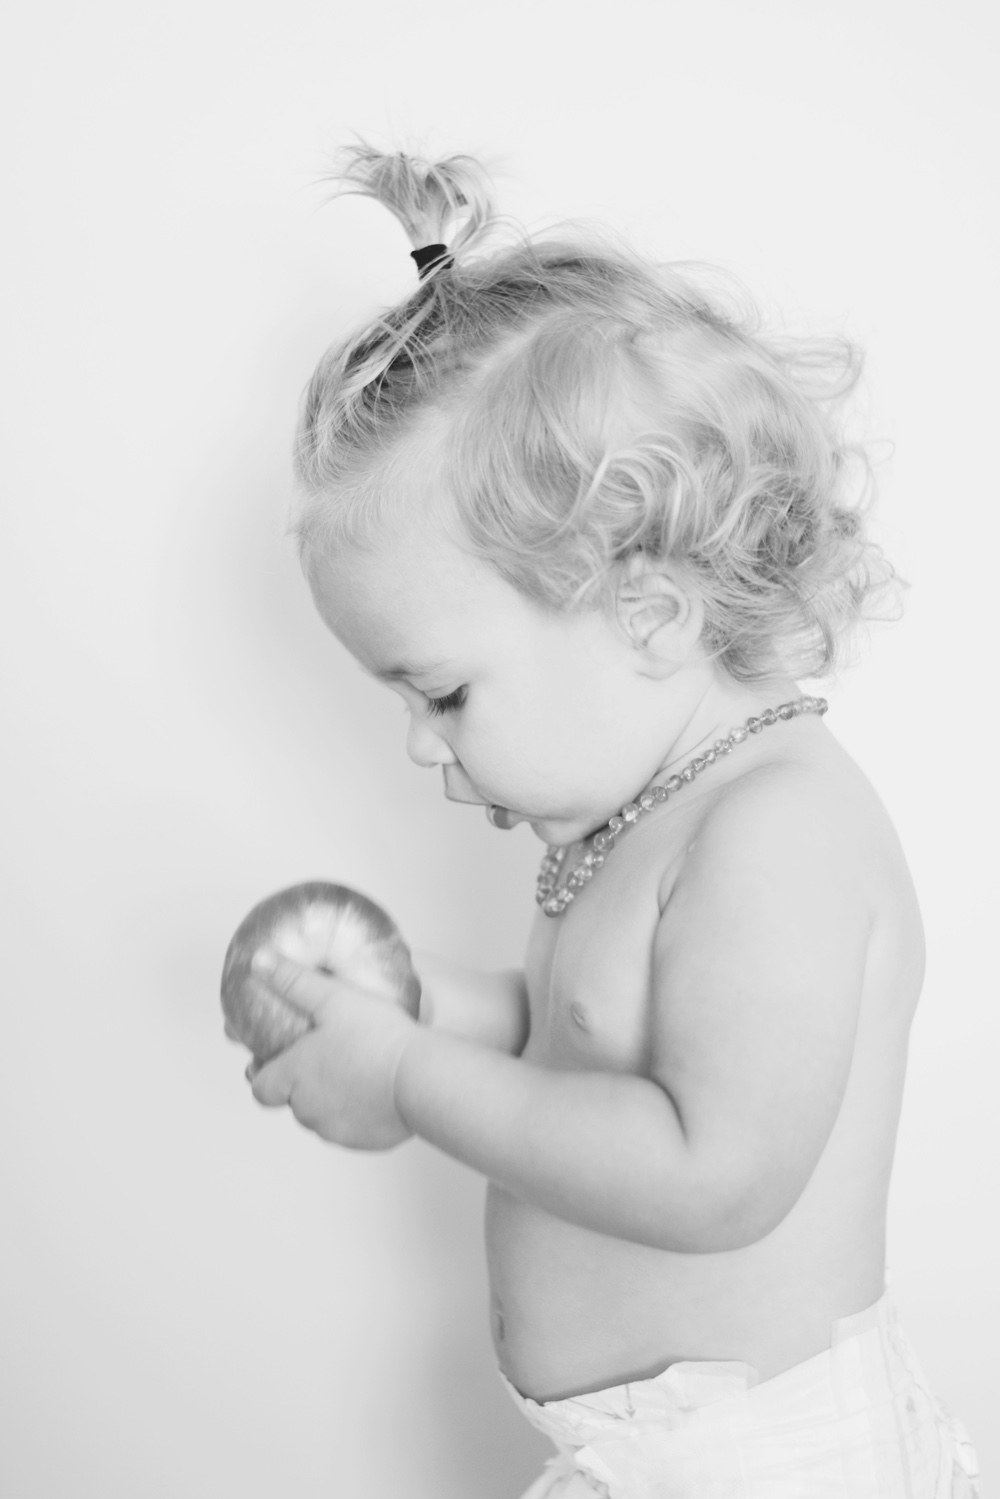 rocco eating an apple, wearing a manbun, being photographed by his sister